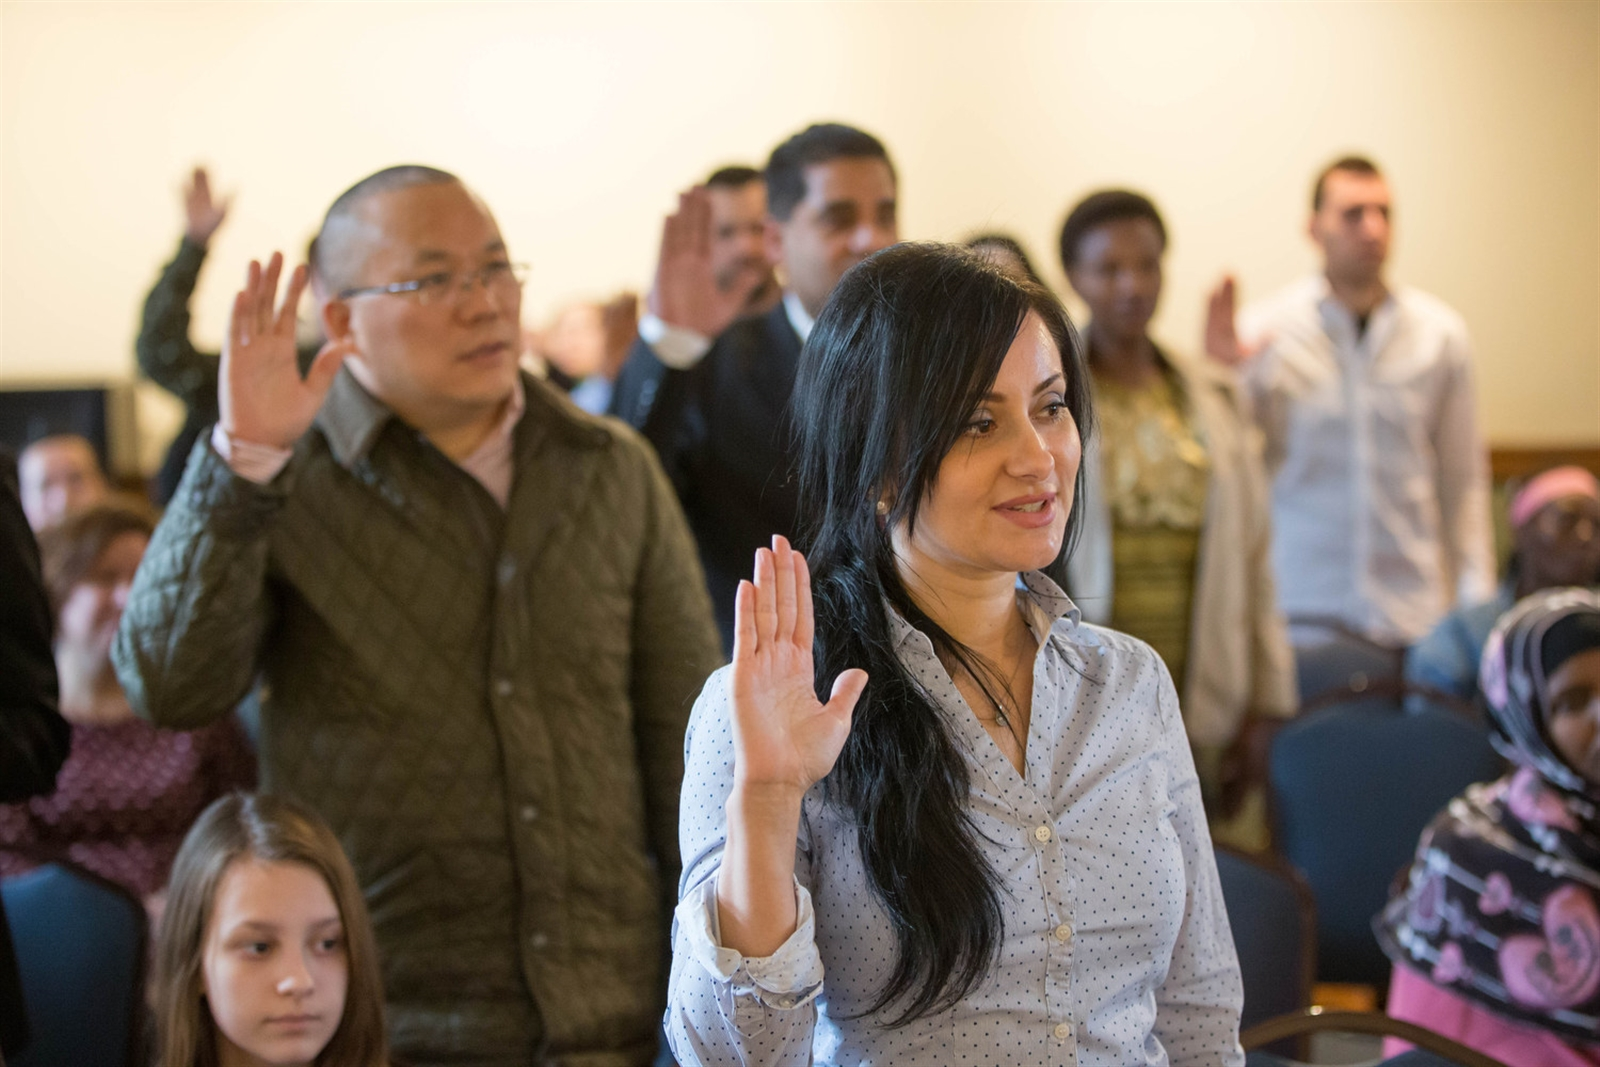 Margarita Johnson of Ukraine takes the oath of allegiance to become a U.S. citizen during a naturalization ceremony at the Theodore Roosevelt Inaugural National Historic Site, Tuesday, Feb. 21, 2017.